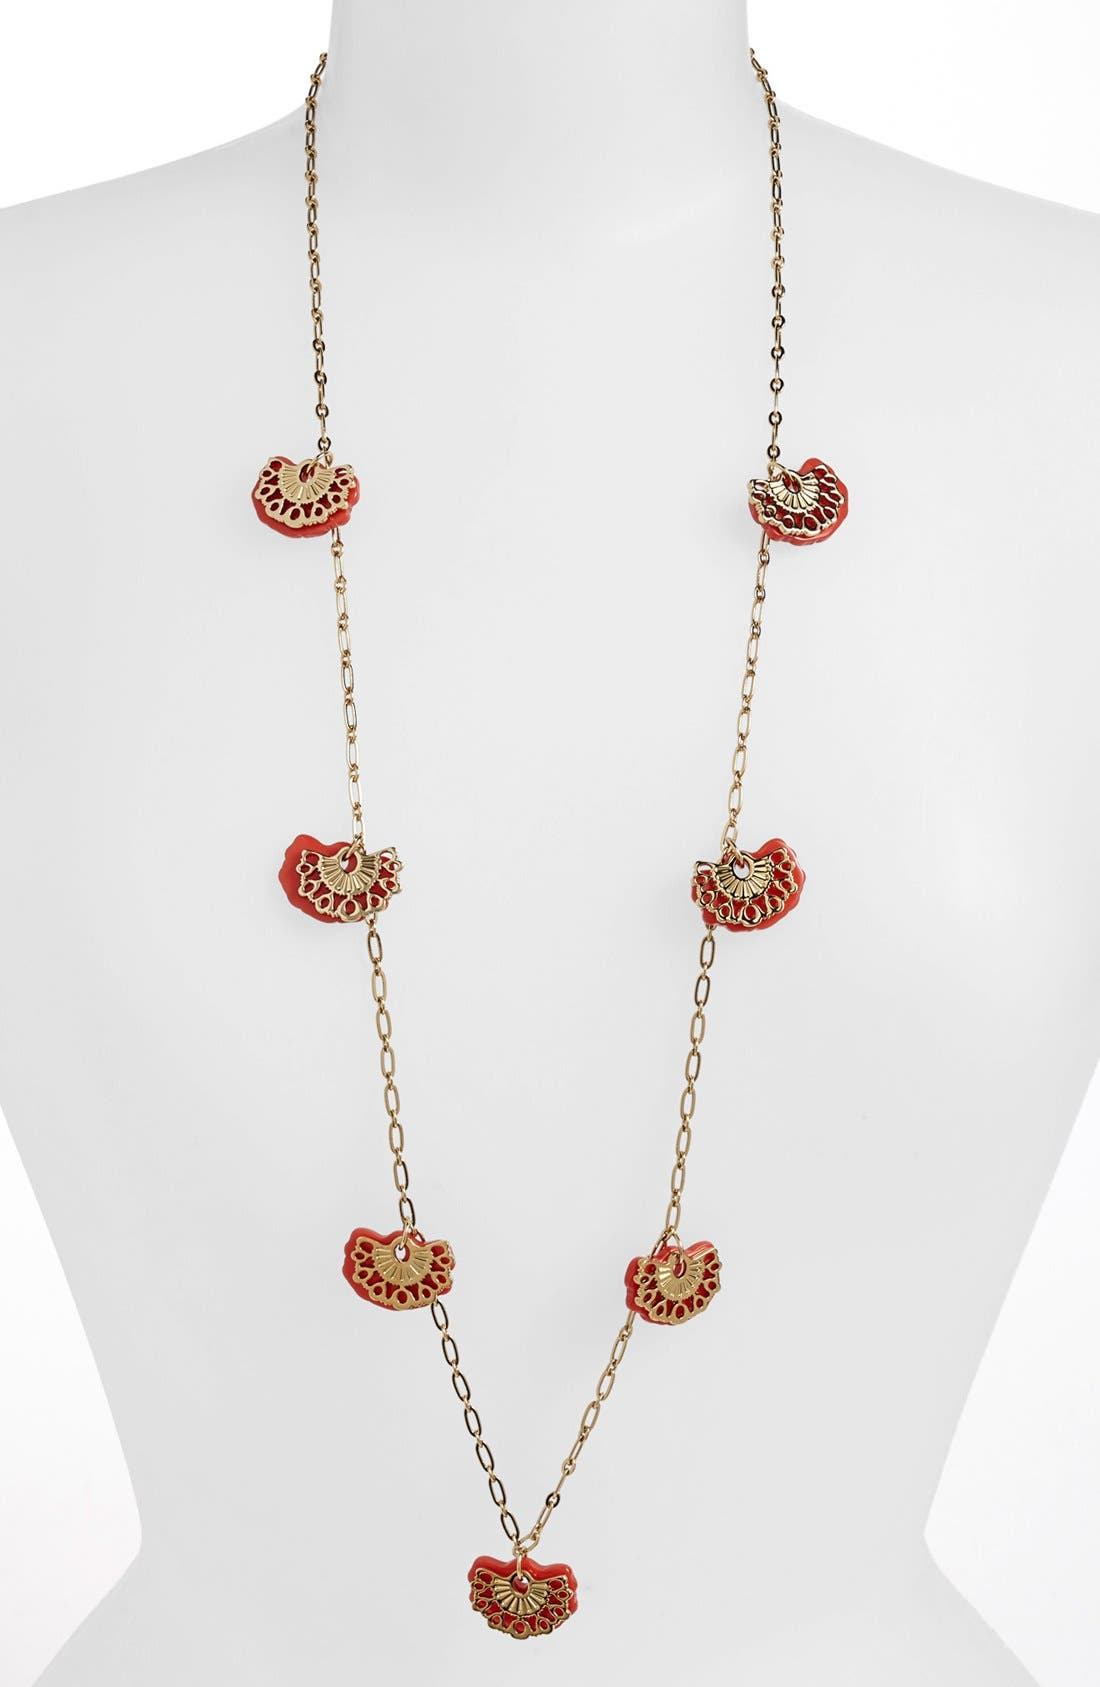 Main Image - Tory Burch 'Madura' Long Charm Necklace